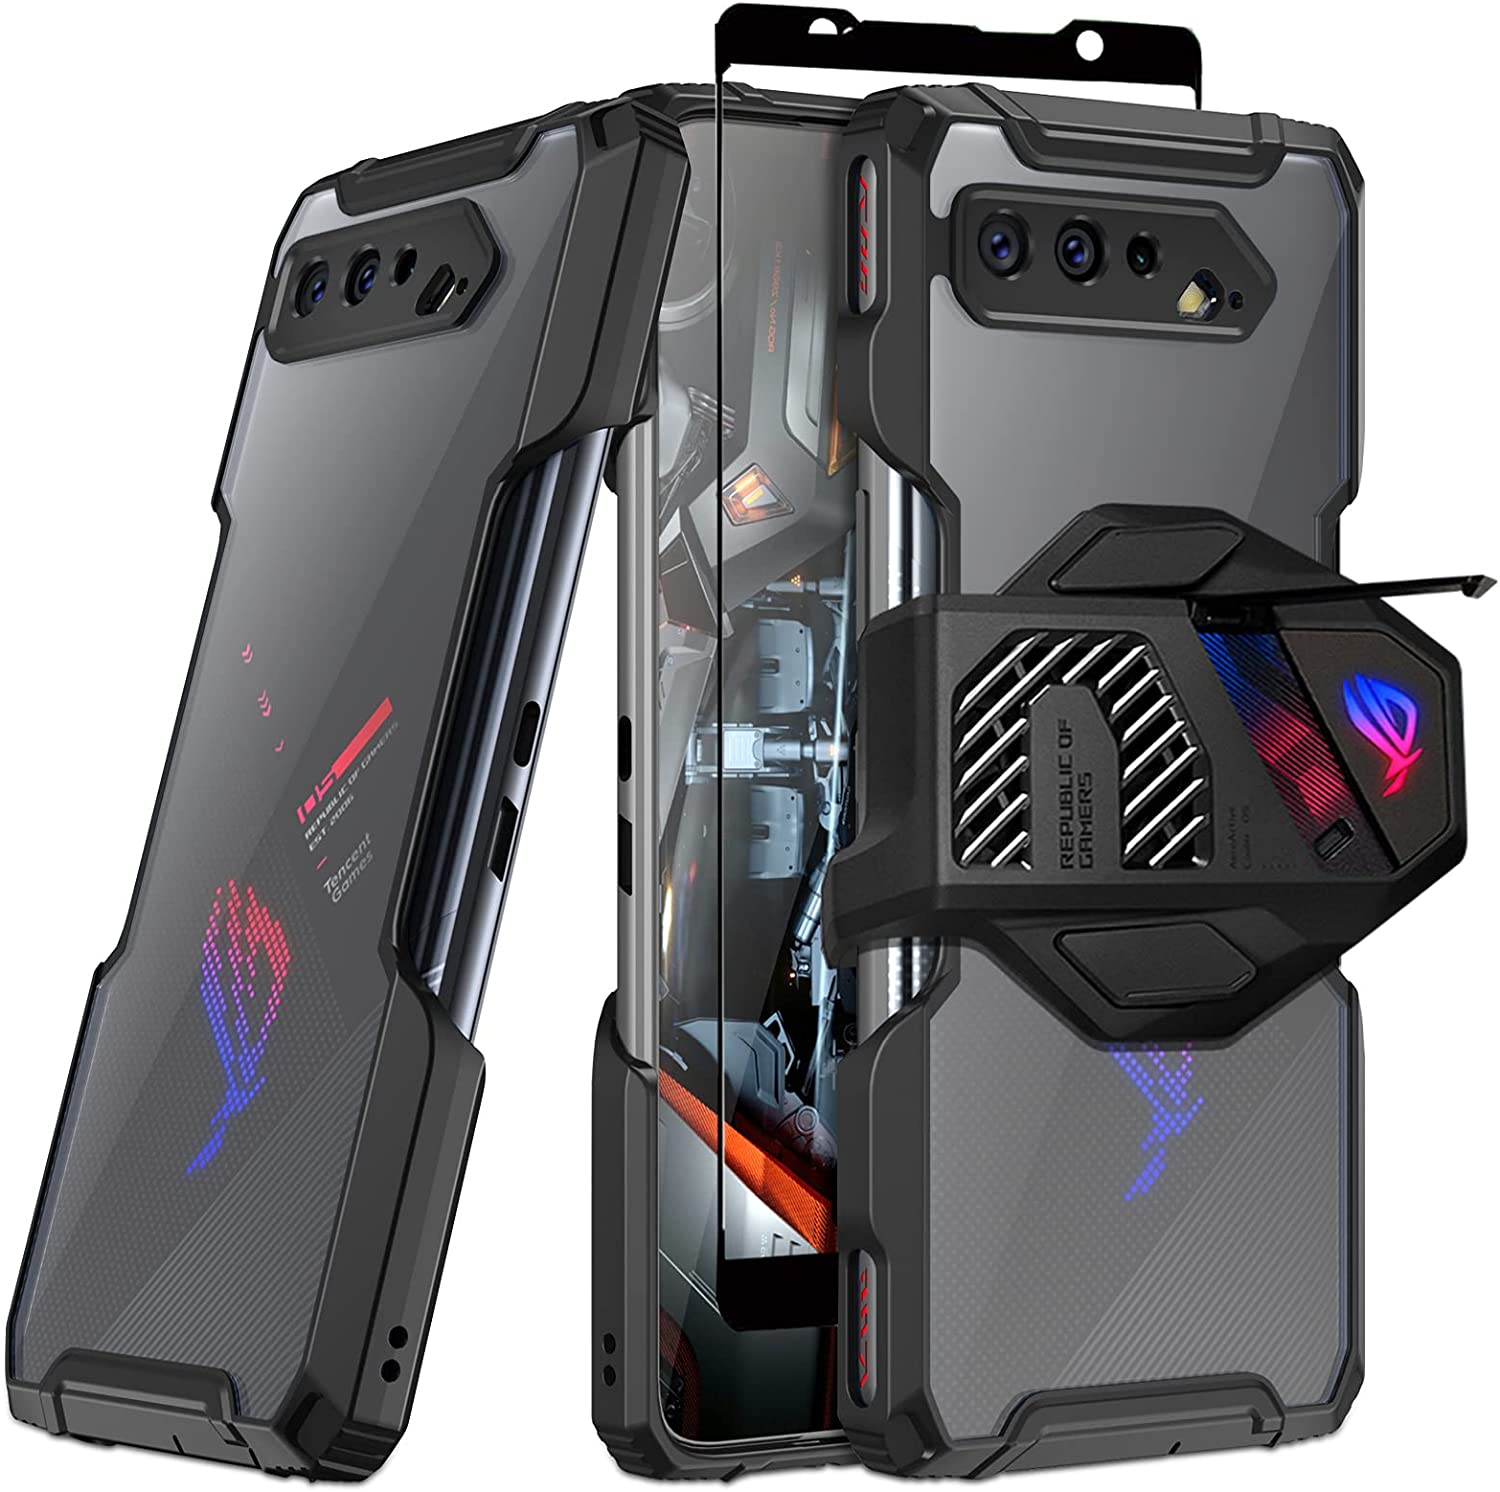 Fanbiya High quality new Armor Case for ASUS ROG Phone NEW before selling Clear TPU 5 Ba - with